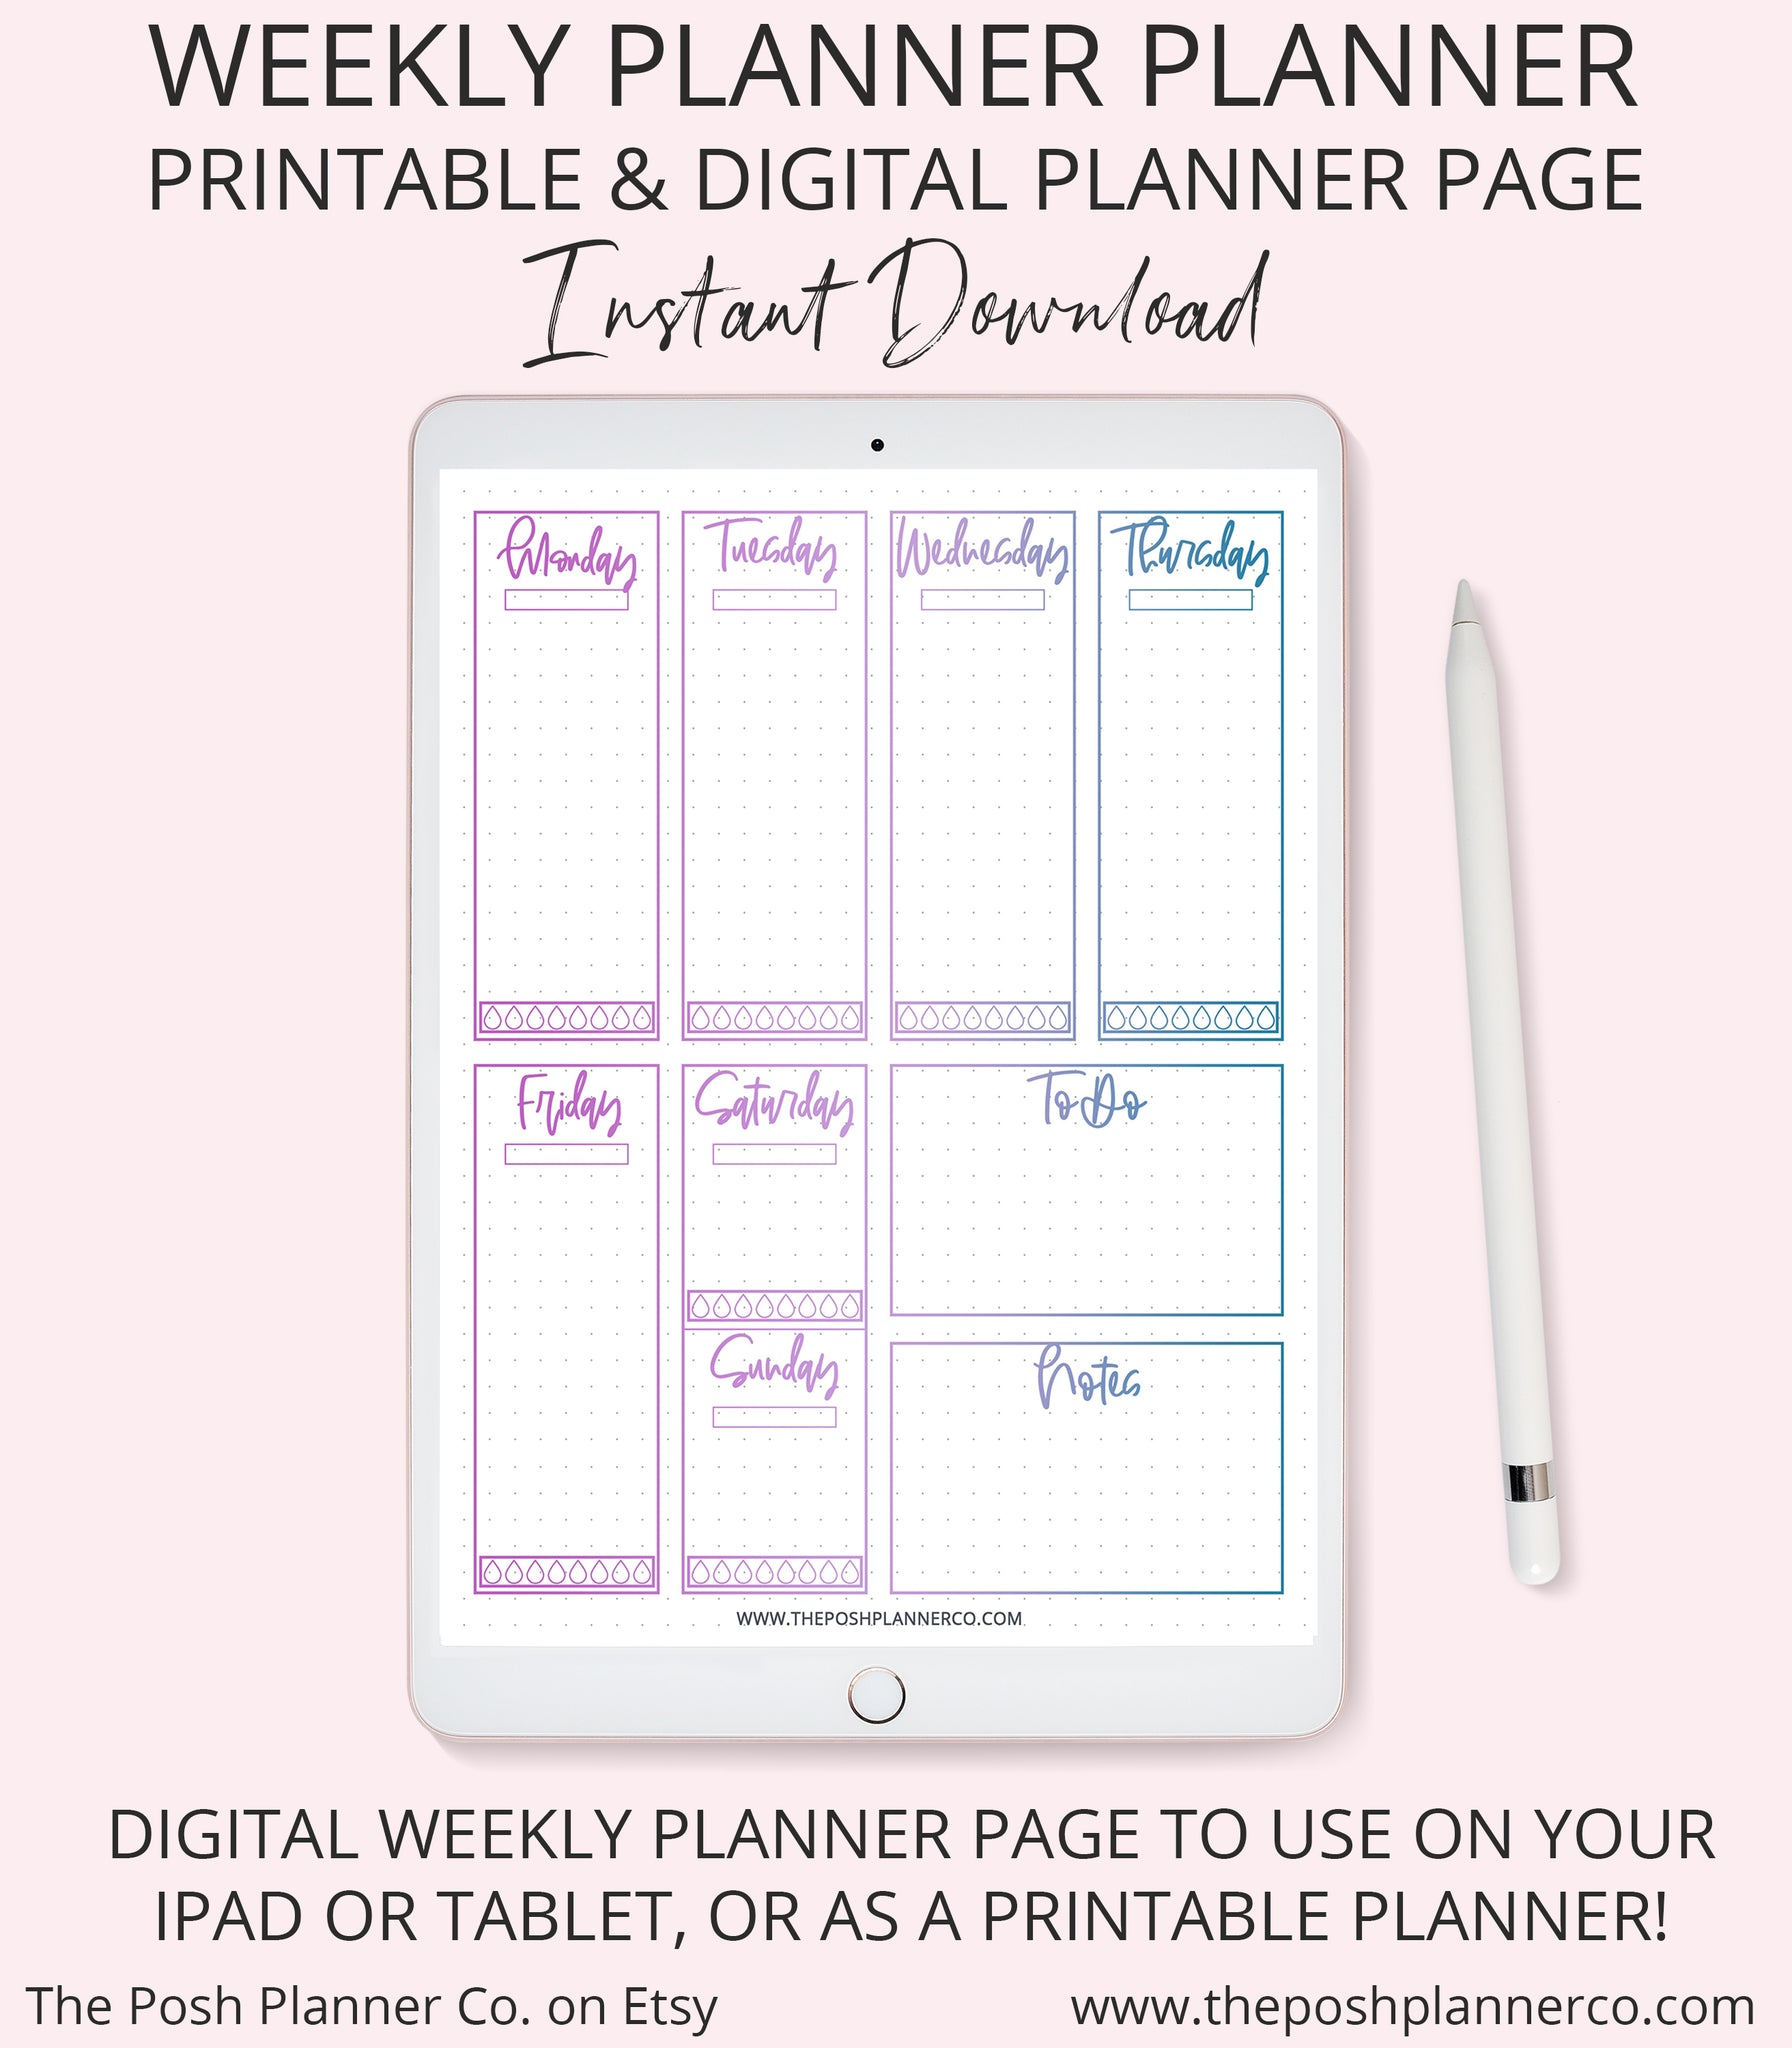 photo about Weekly Planner Pages called Printable Weekly Planner - Planner Web site Add